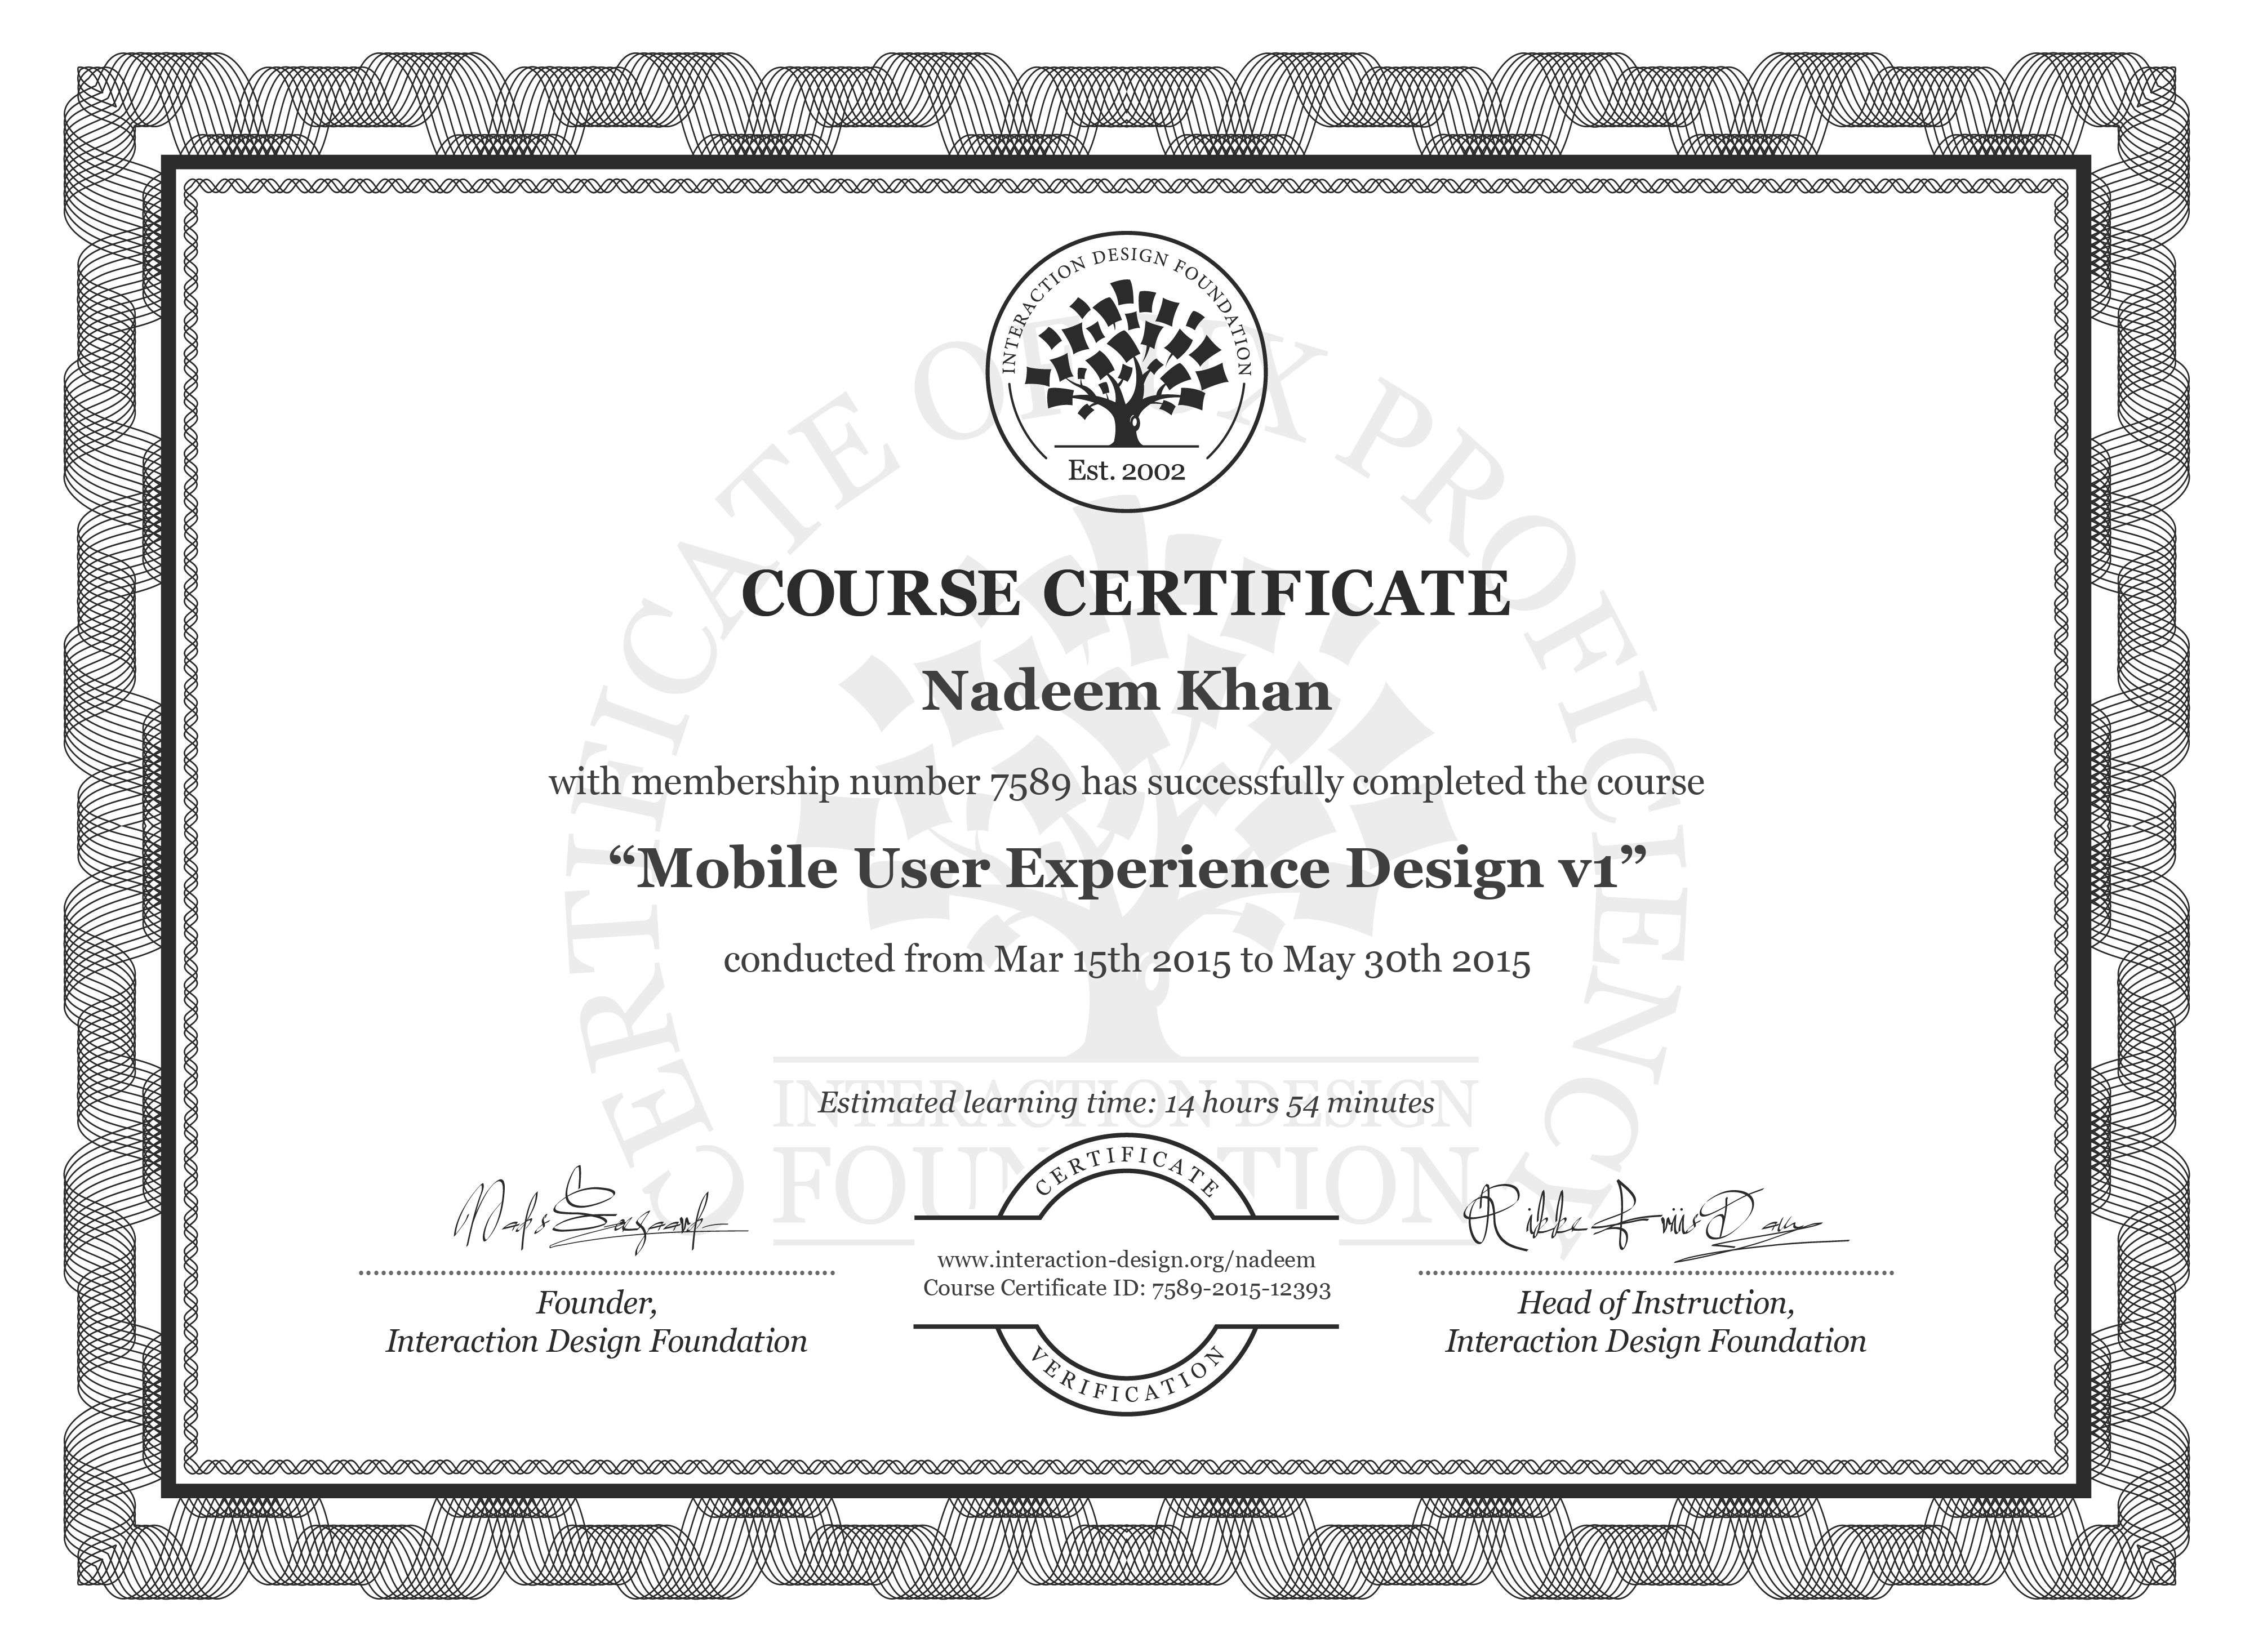 Nadeem Khan: Course Certificate - Mobile User Experience Design